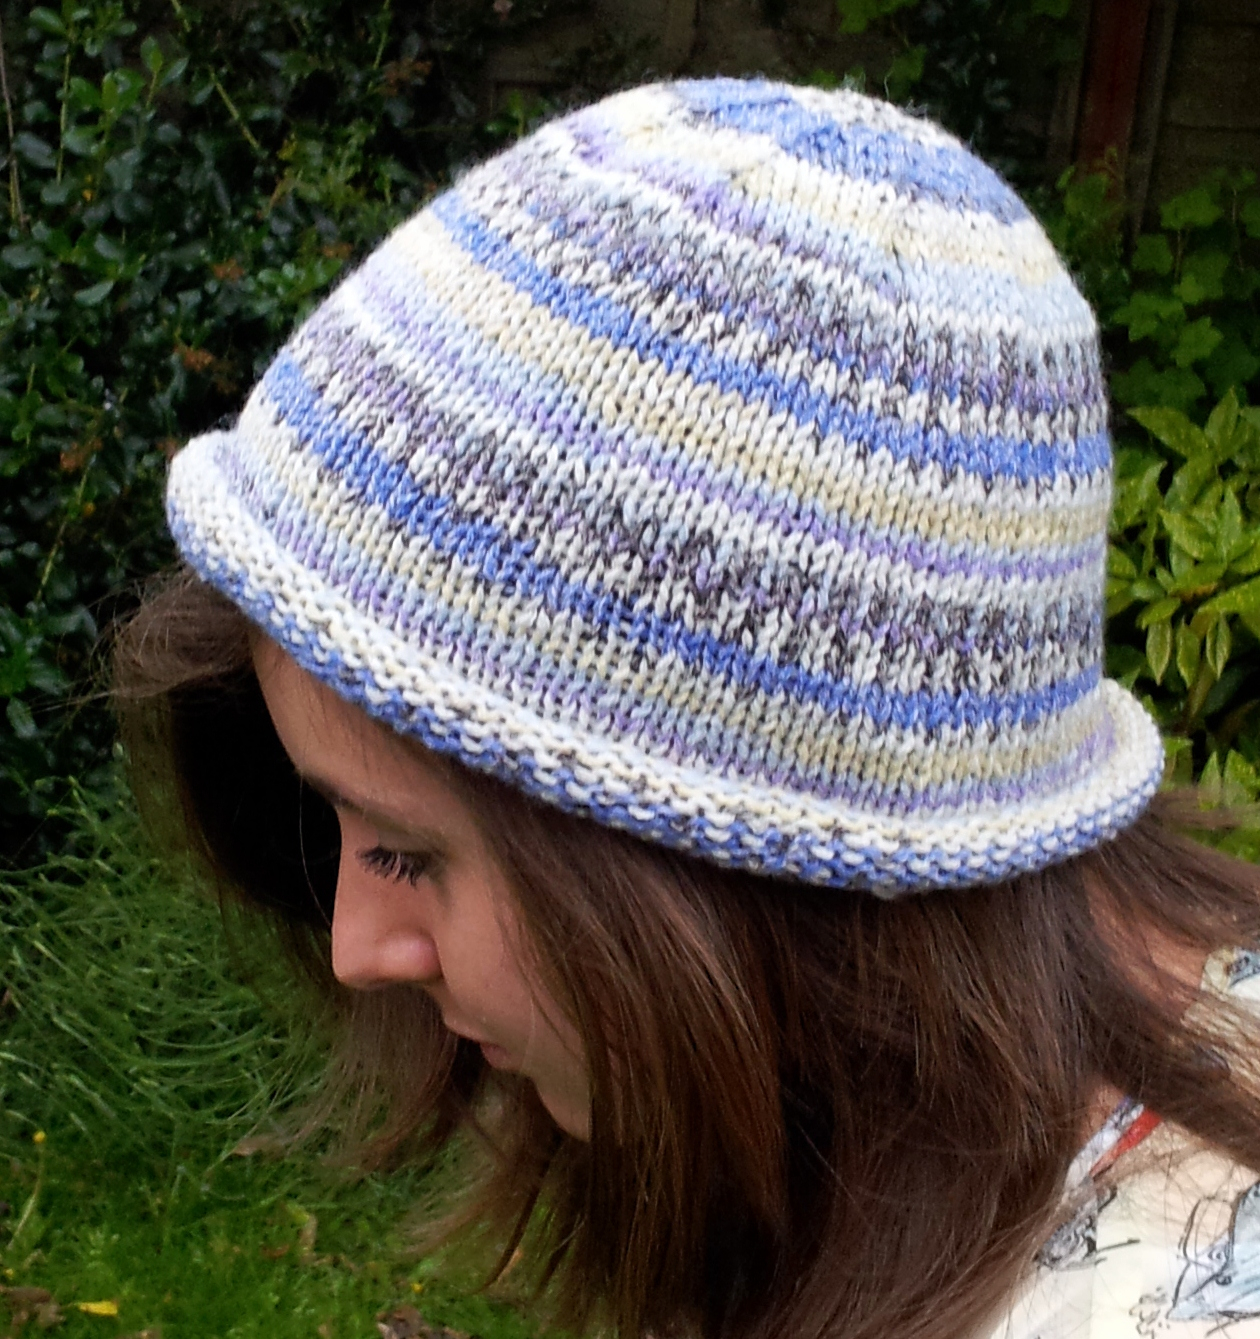 Bobble Hat Knitting Pattern Free Knitted Rolled Brim Beanie Hat Free Beginners Pattern